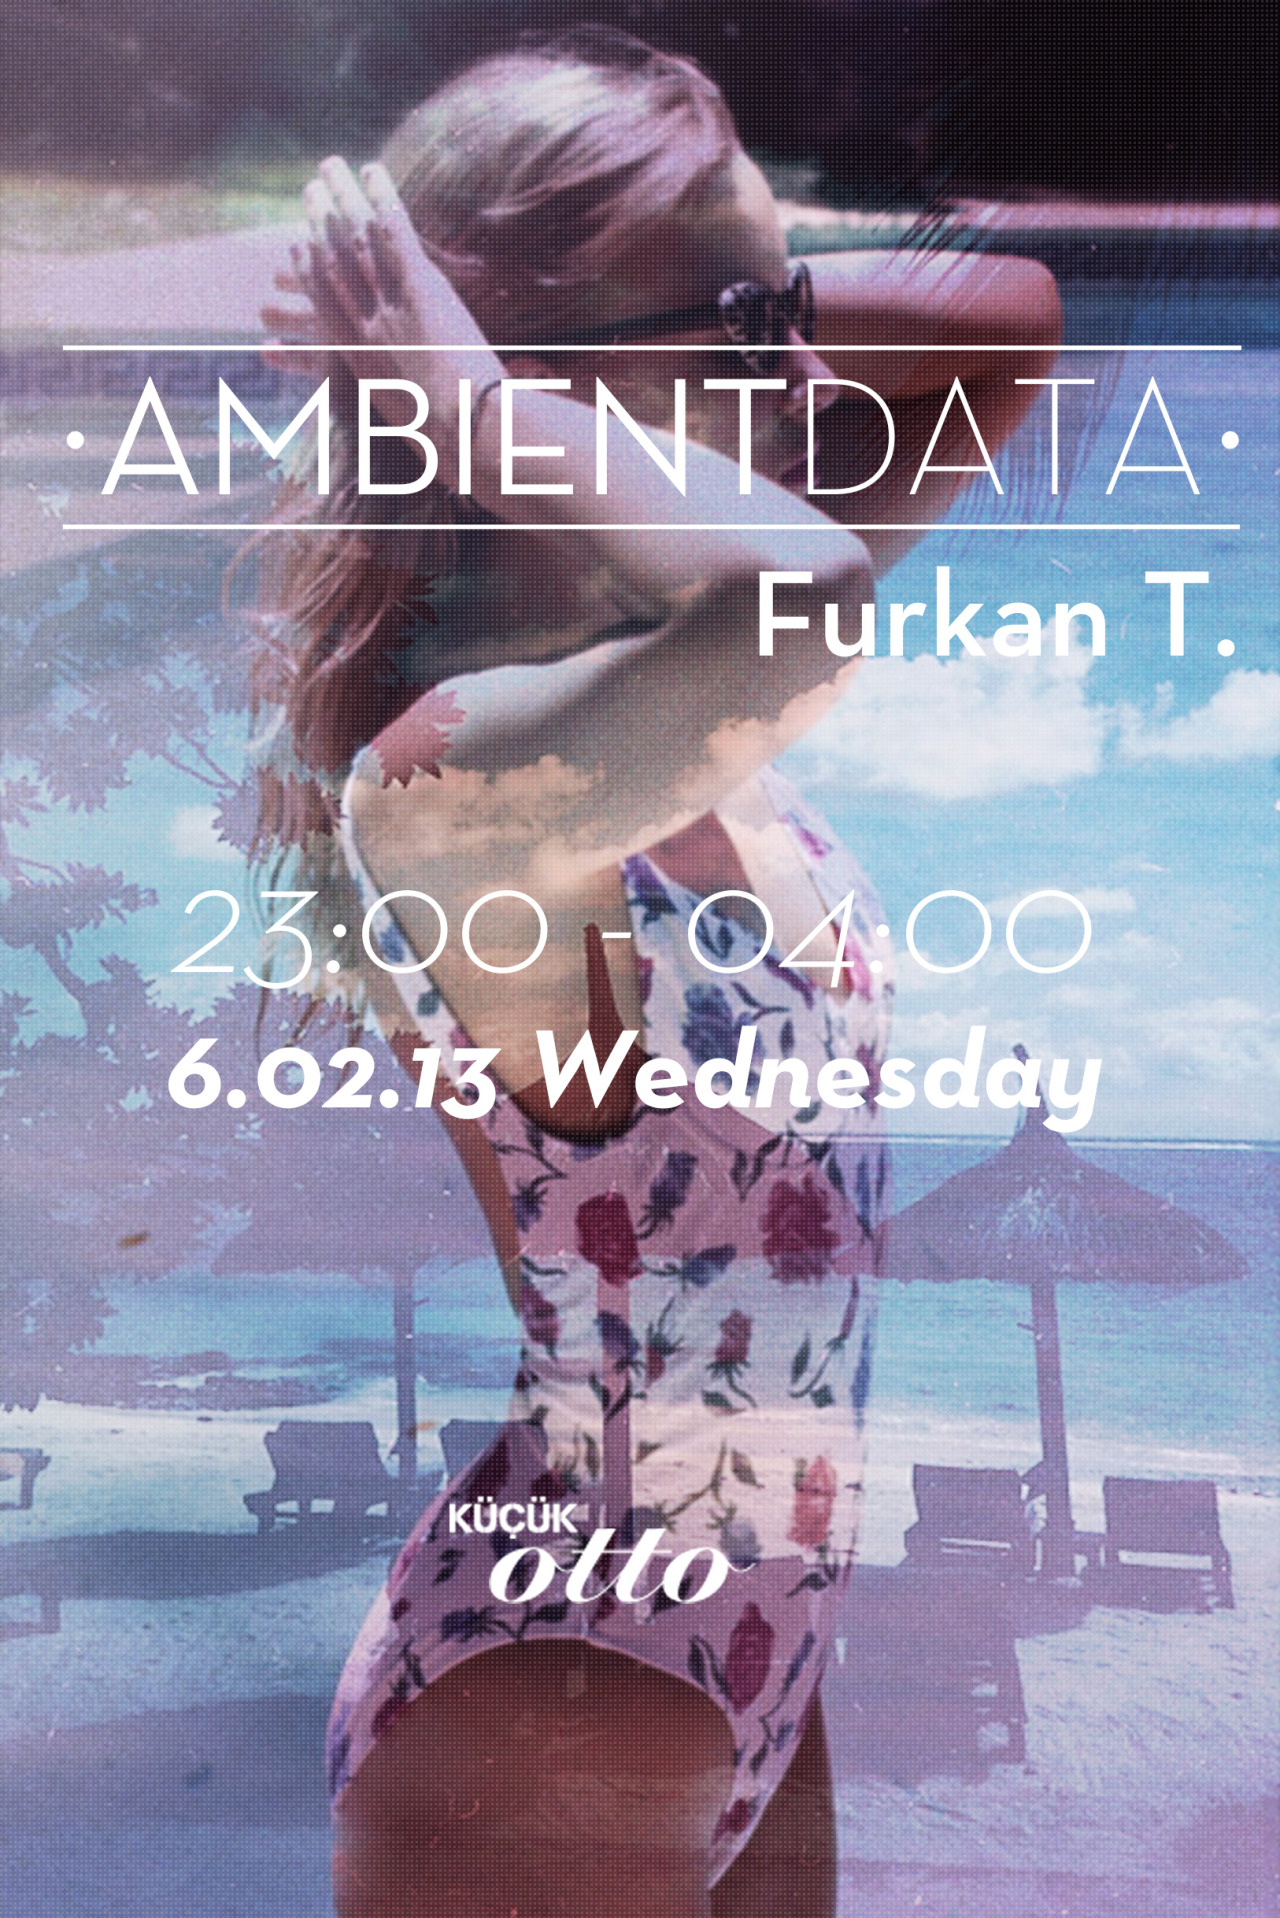 ambientdata:  AmbientData - Furkan T. 6 February 2013 - Wednesday23:00 - 04:00 @ K. Otto http://on.fb.me/Upa46n